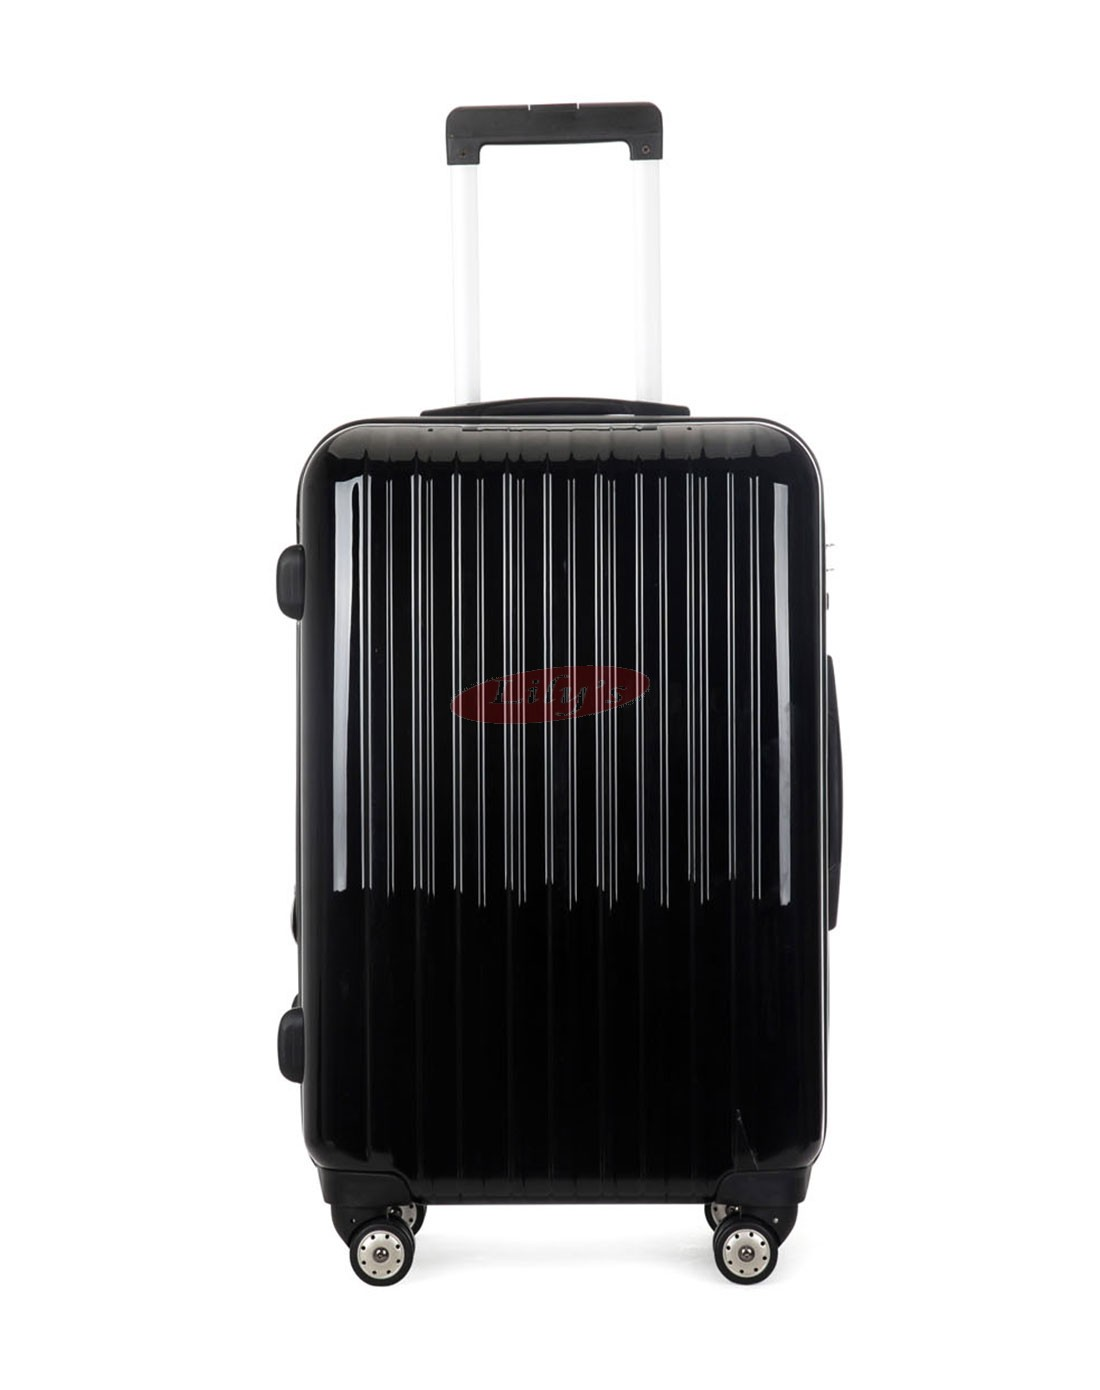 """AIRCROSS 3PC Set Luggage A55 Black Hard Case Expandable Trolley Luggage - 20""""24""""&26"""""""